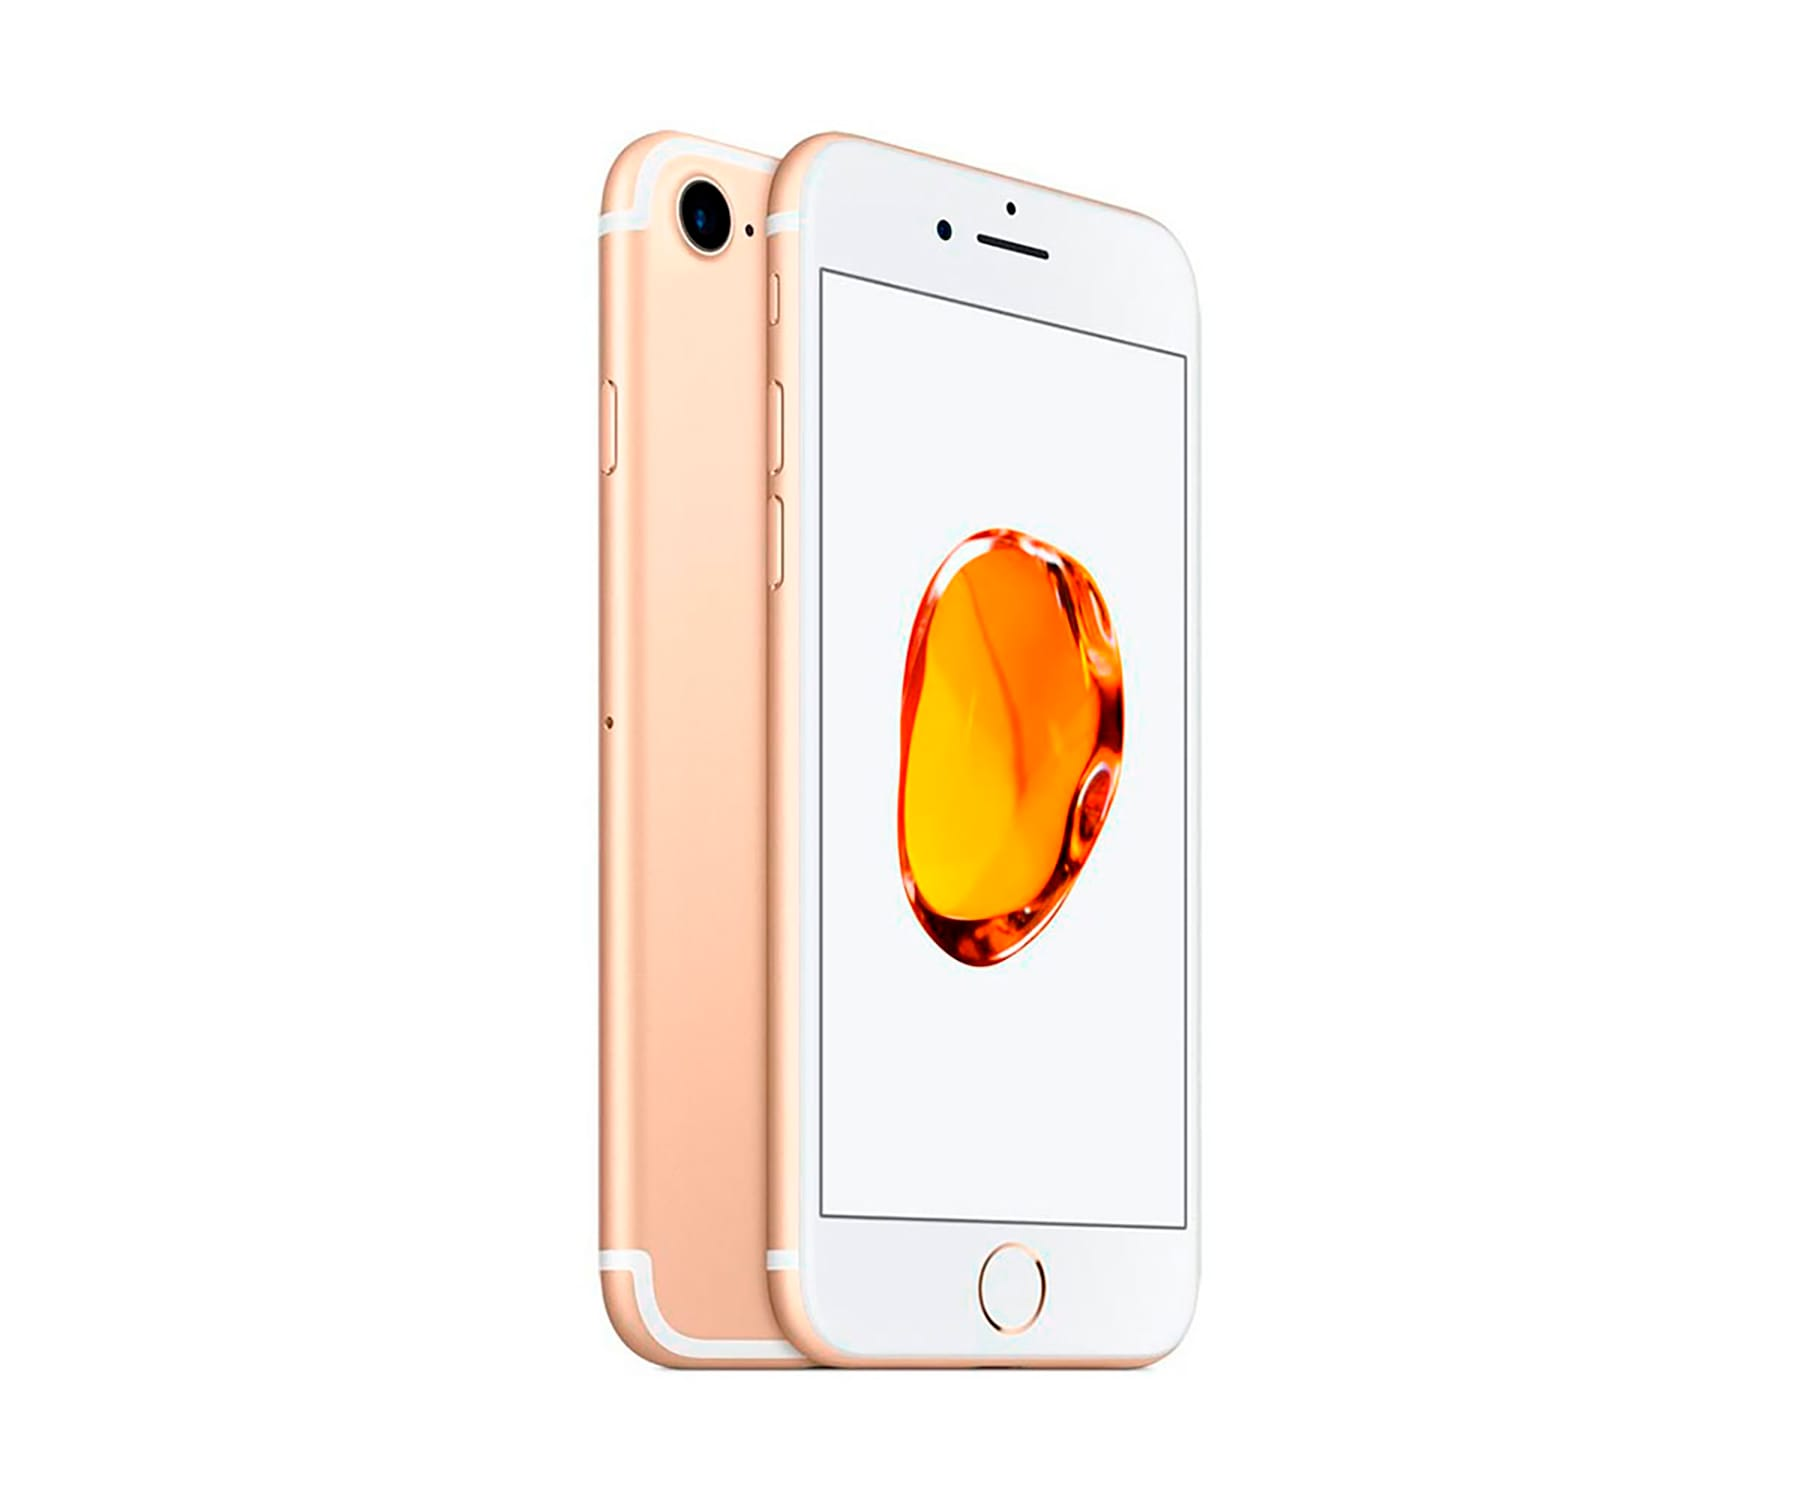 APPLE IPHONE 7 128GB DORADO REACONDICIONADO CPO MÓVIL 4G 4.7 RETINA HD/4CORE/128GB/2GB RAM/12MP/7M